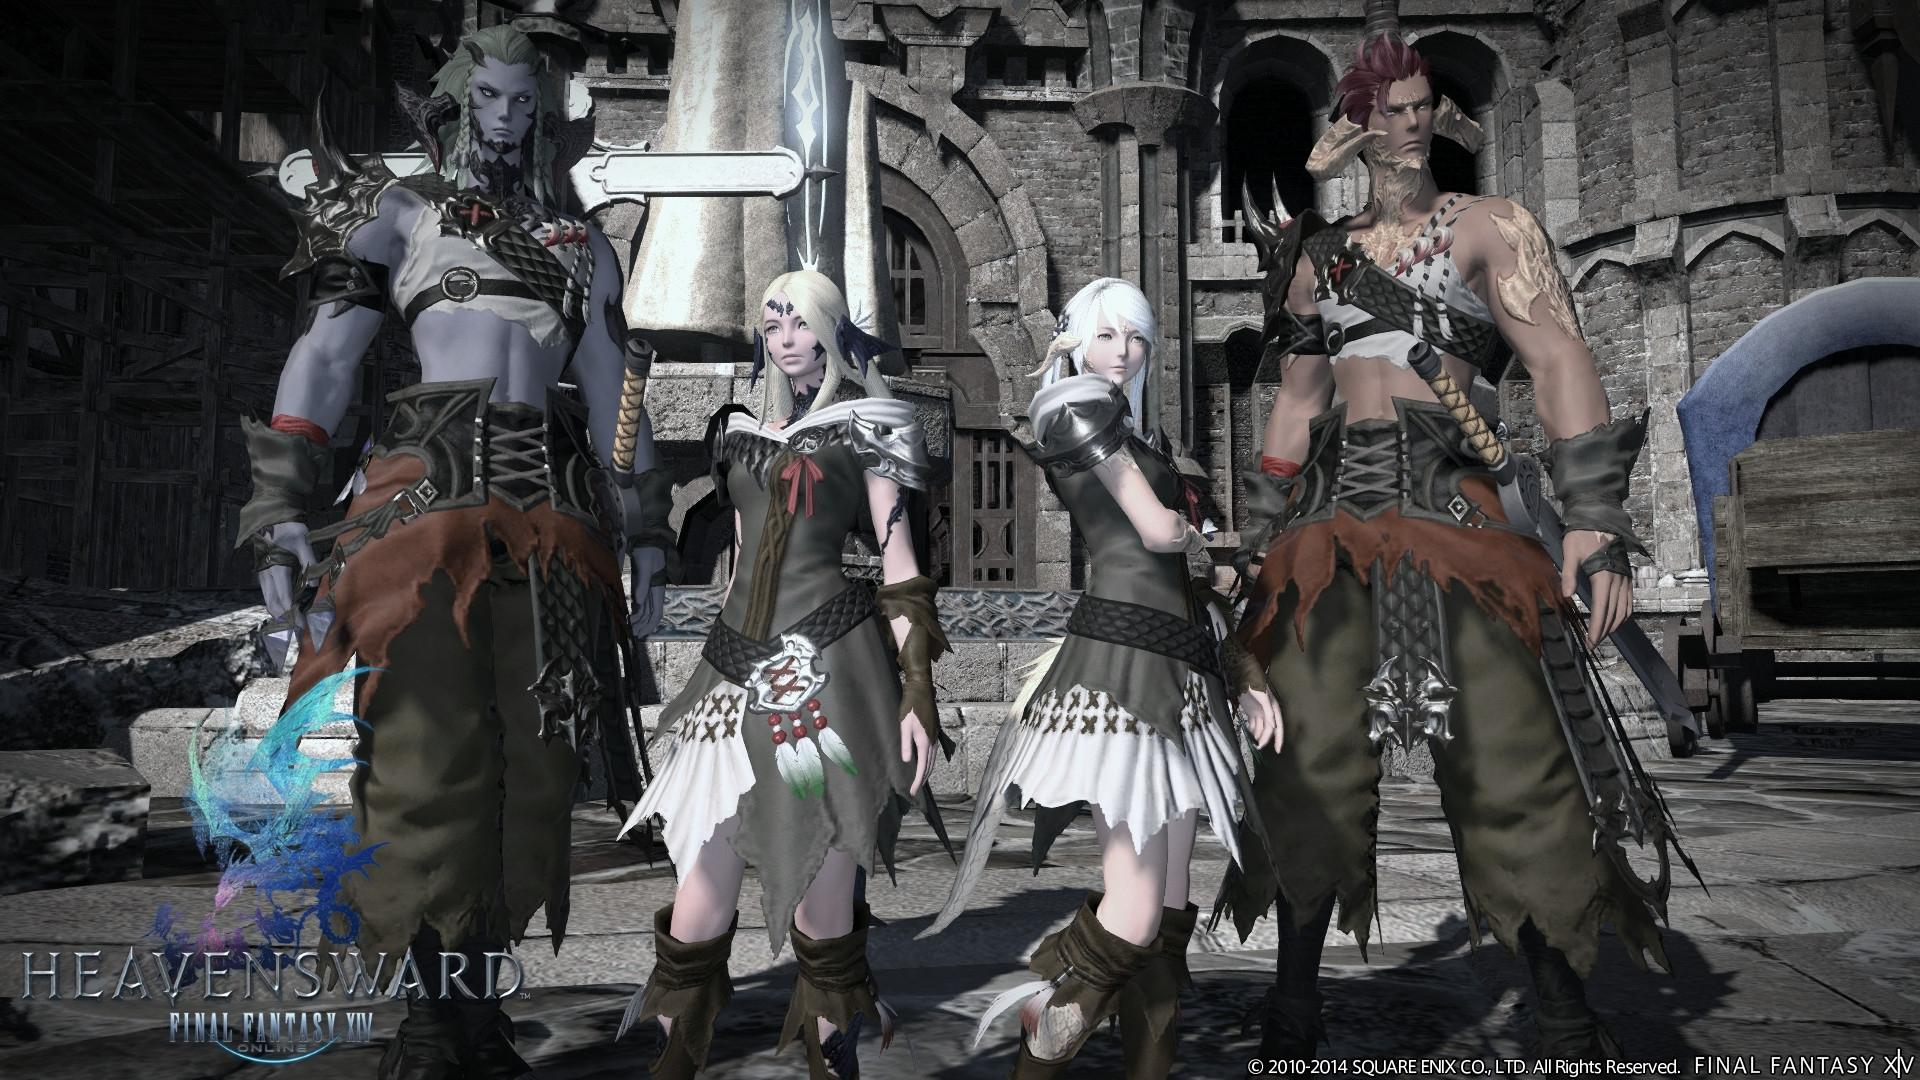 Final Fantasy XIV: Heavensward + Final Fantasy XIV: A Realm Reborn pro PC hra